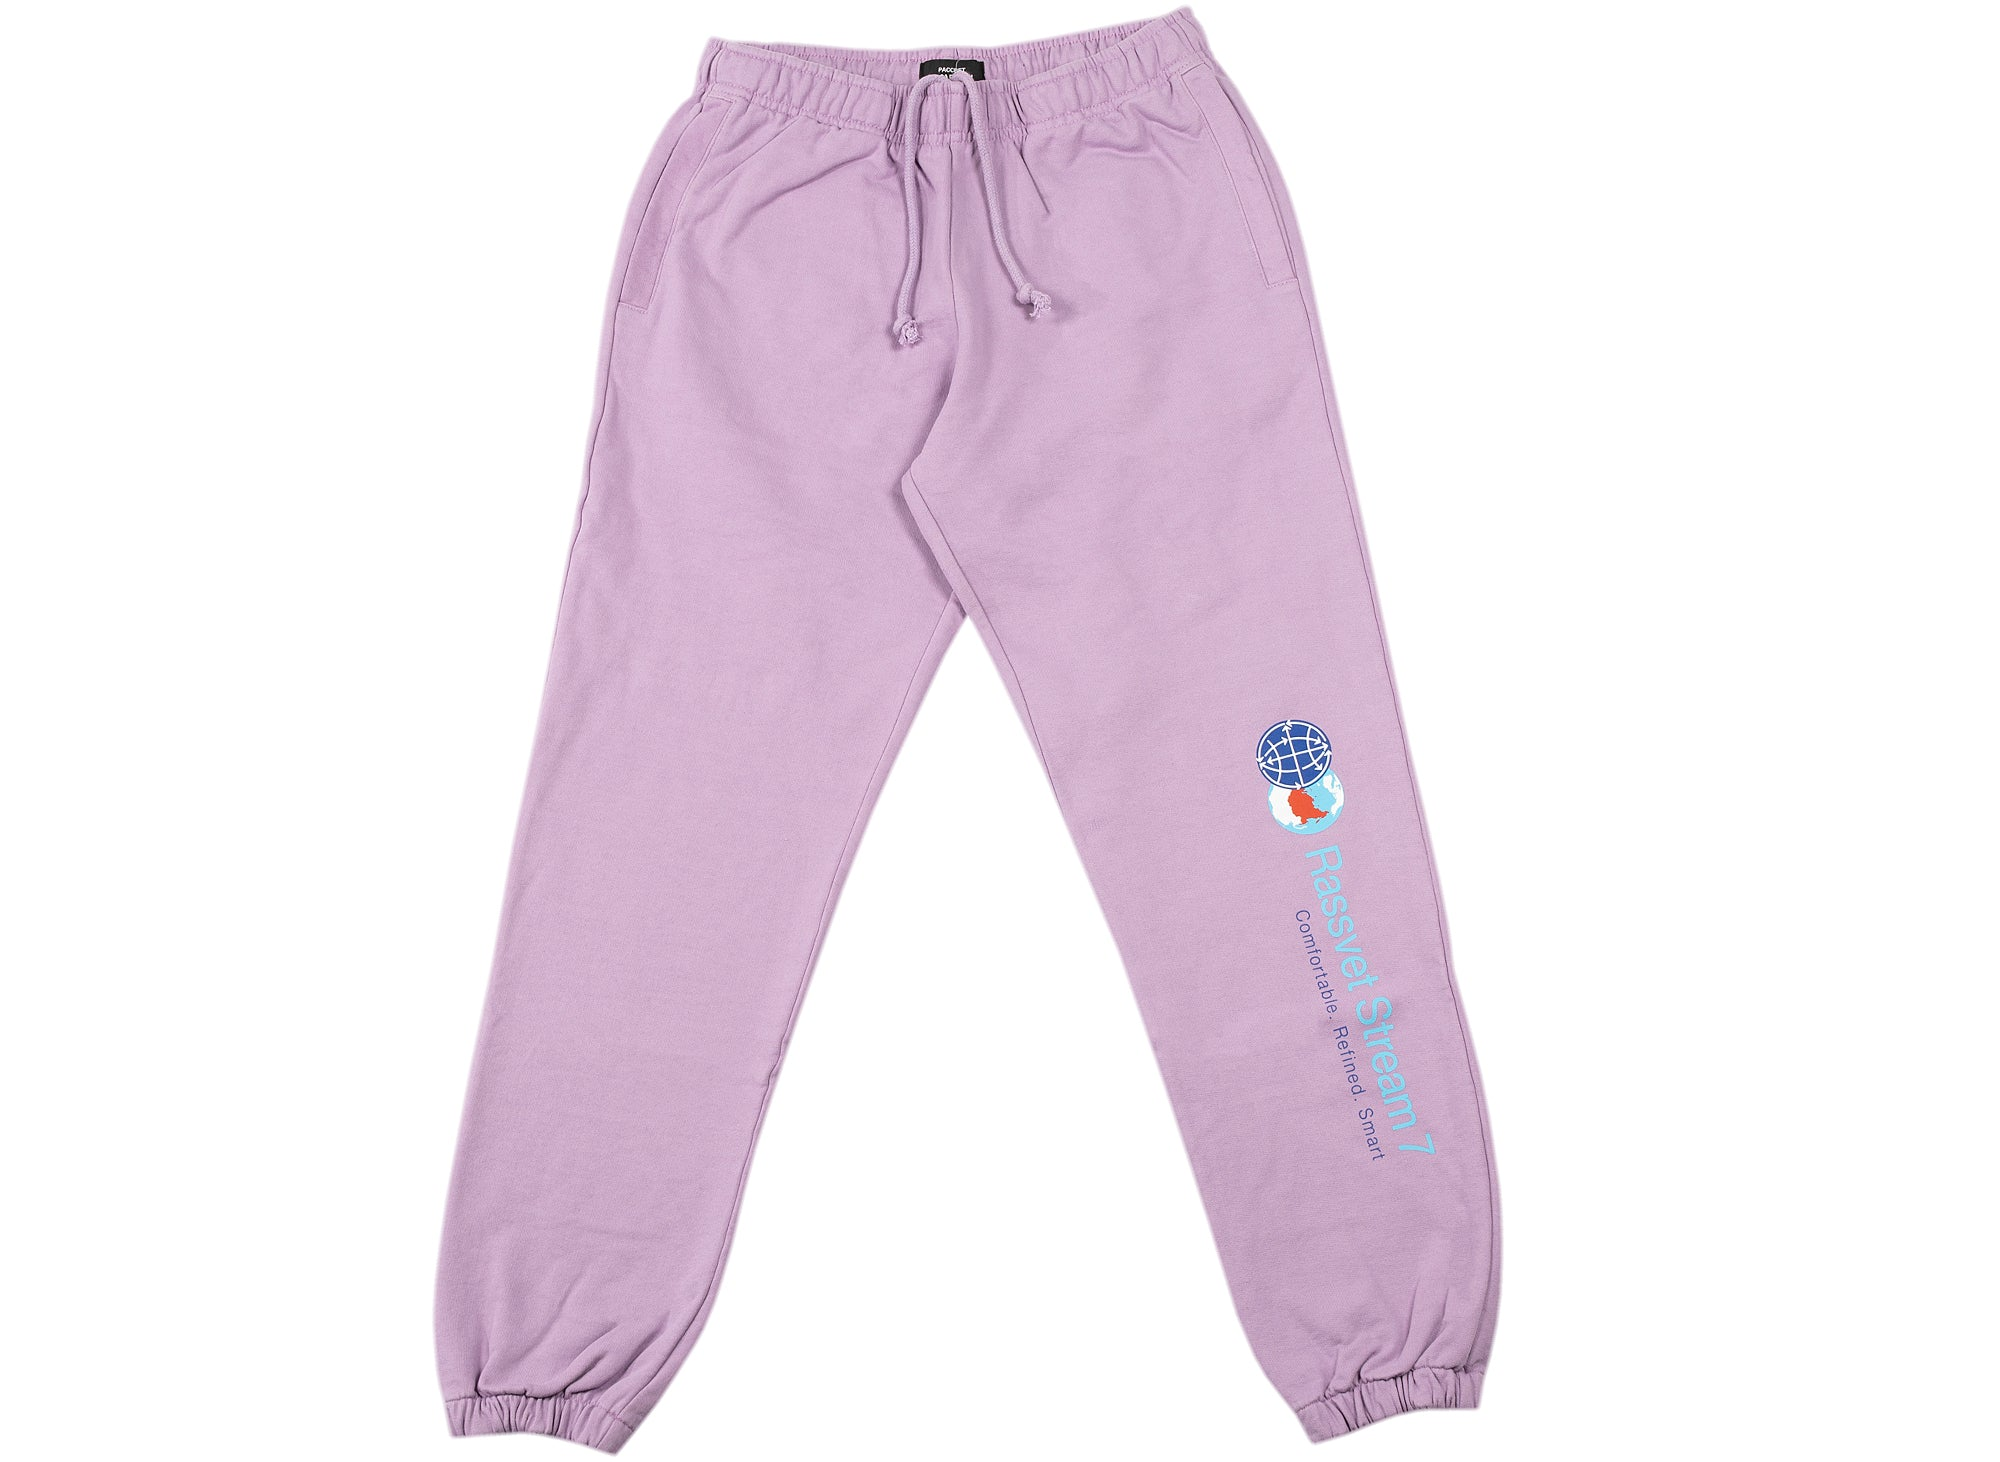 Rassvet (PACCBET) Men's Sweatpants